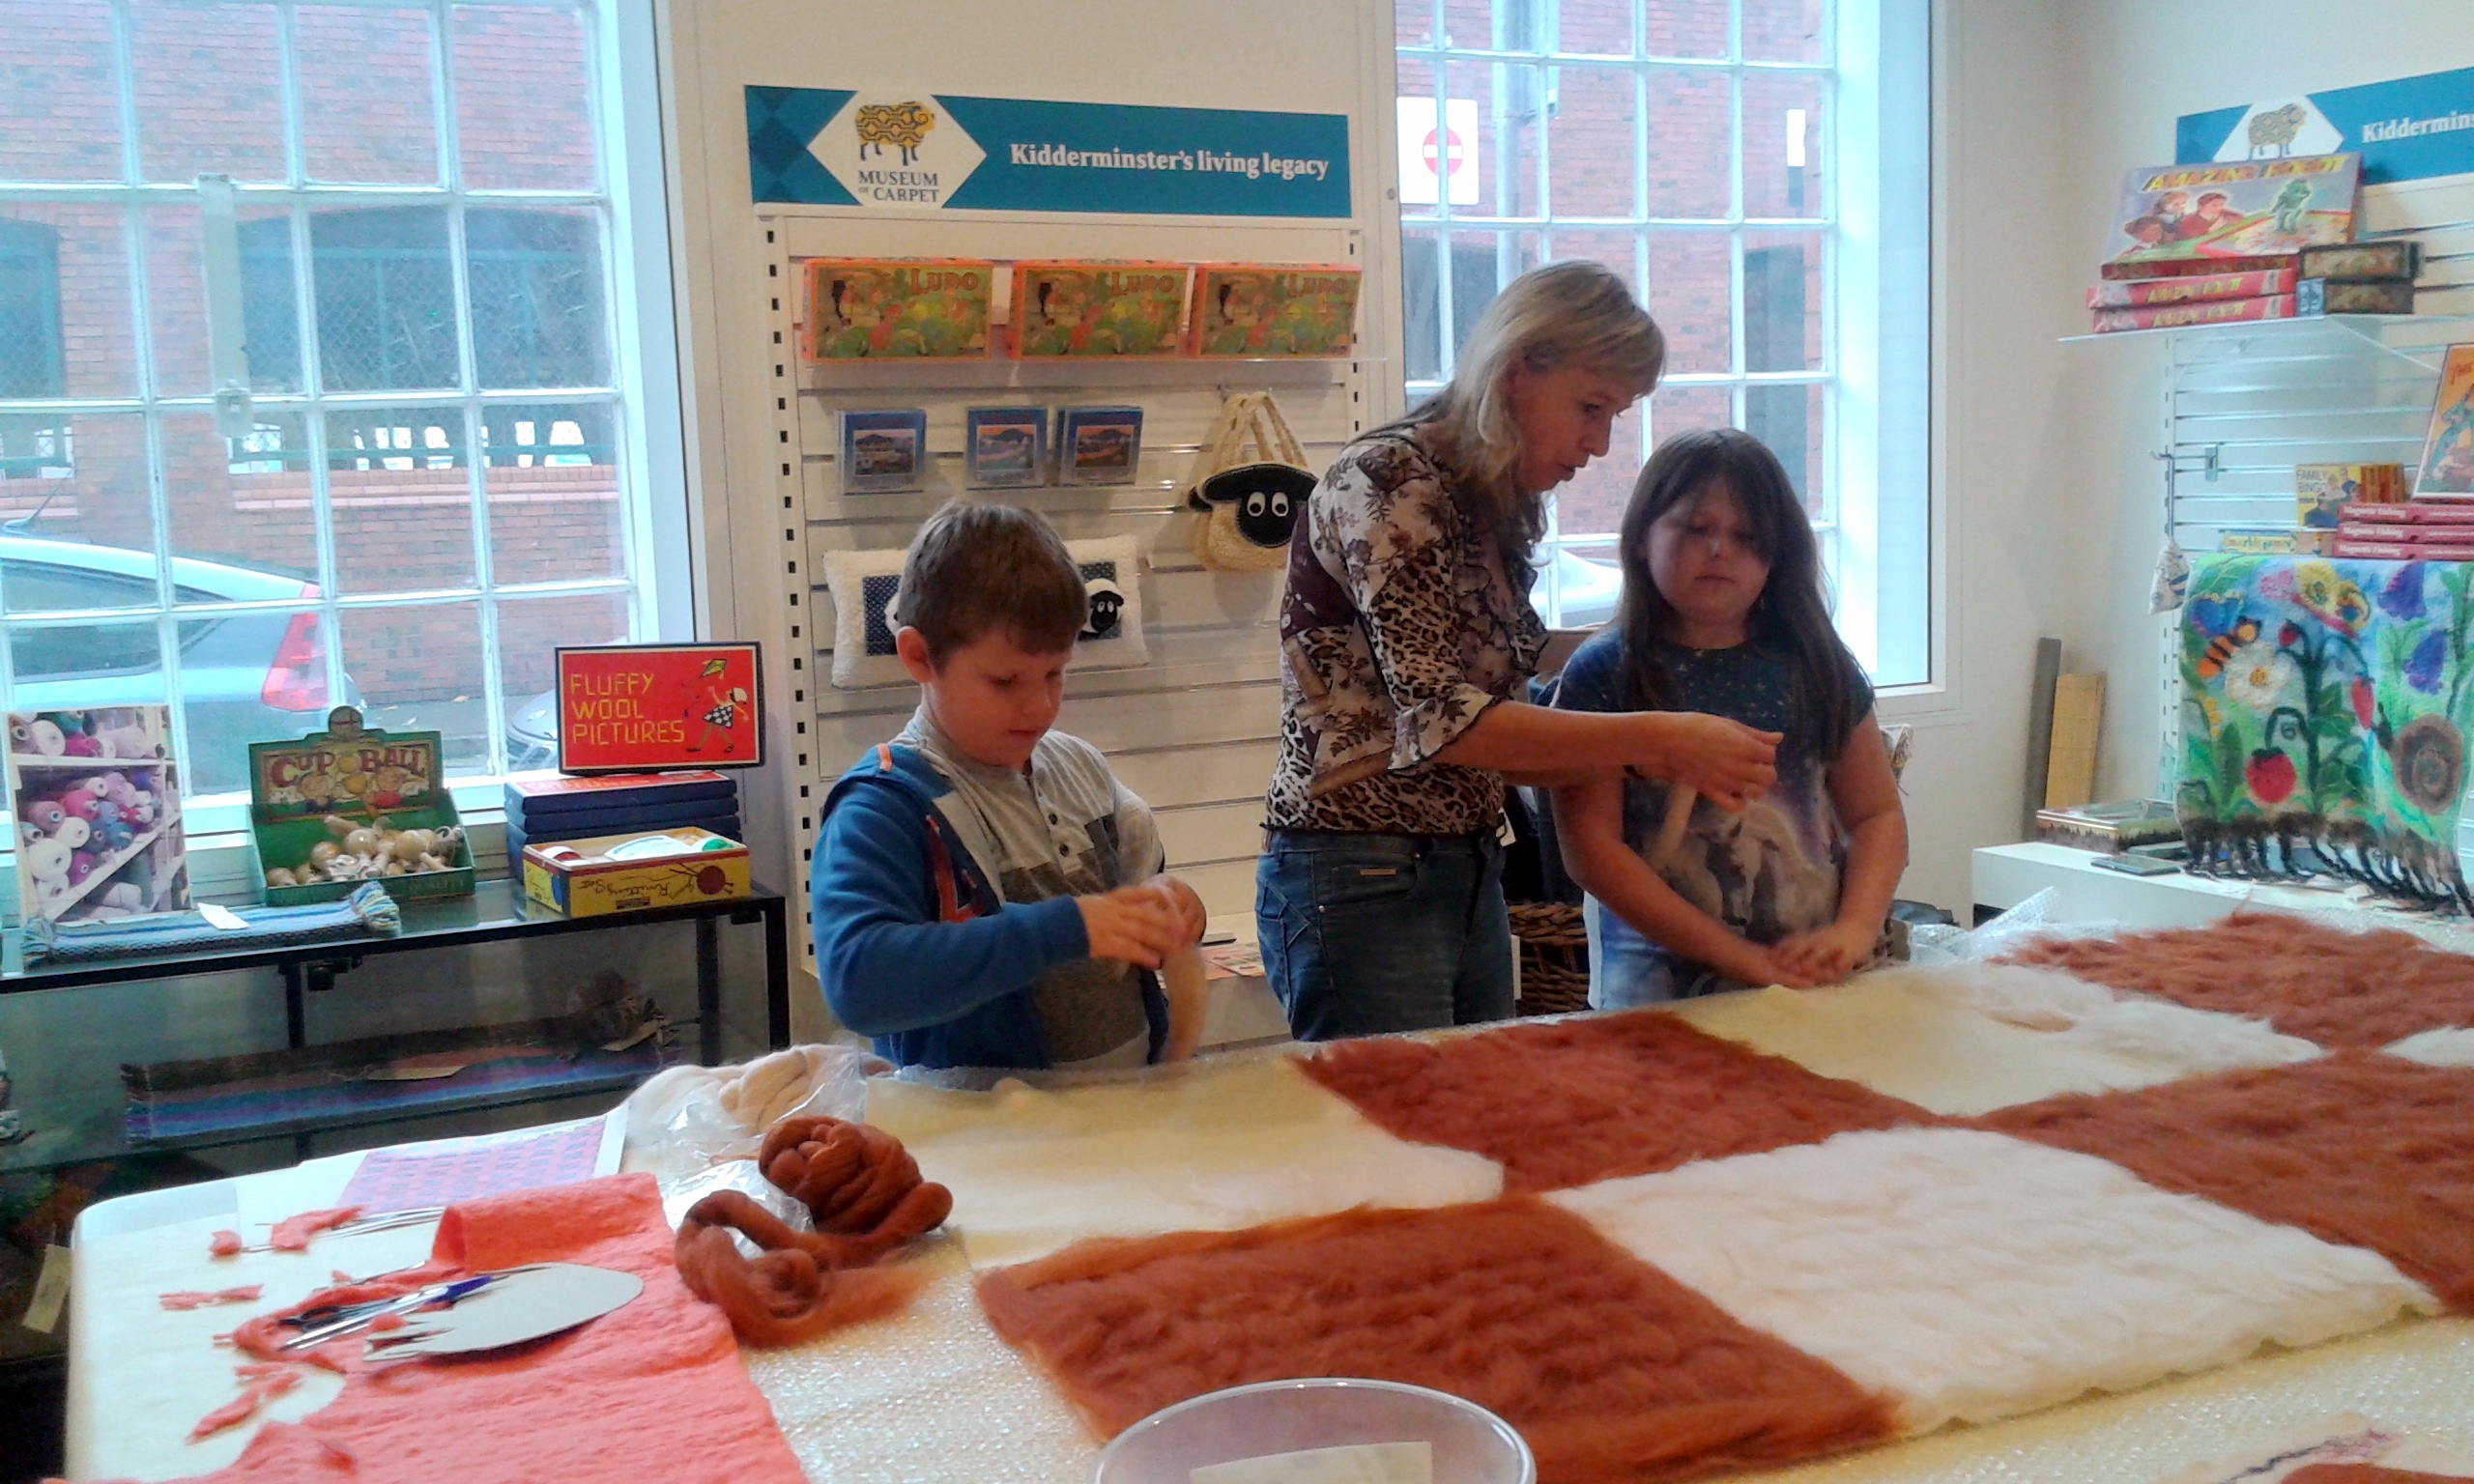 Raya working with children at carpet museum